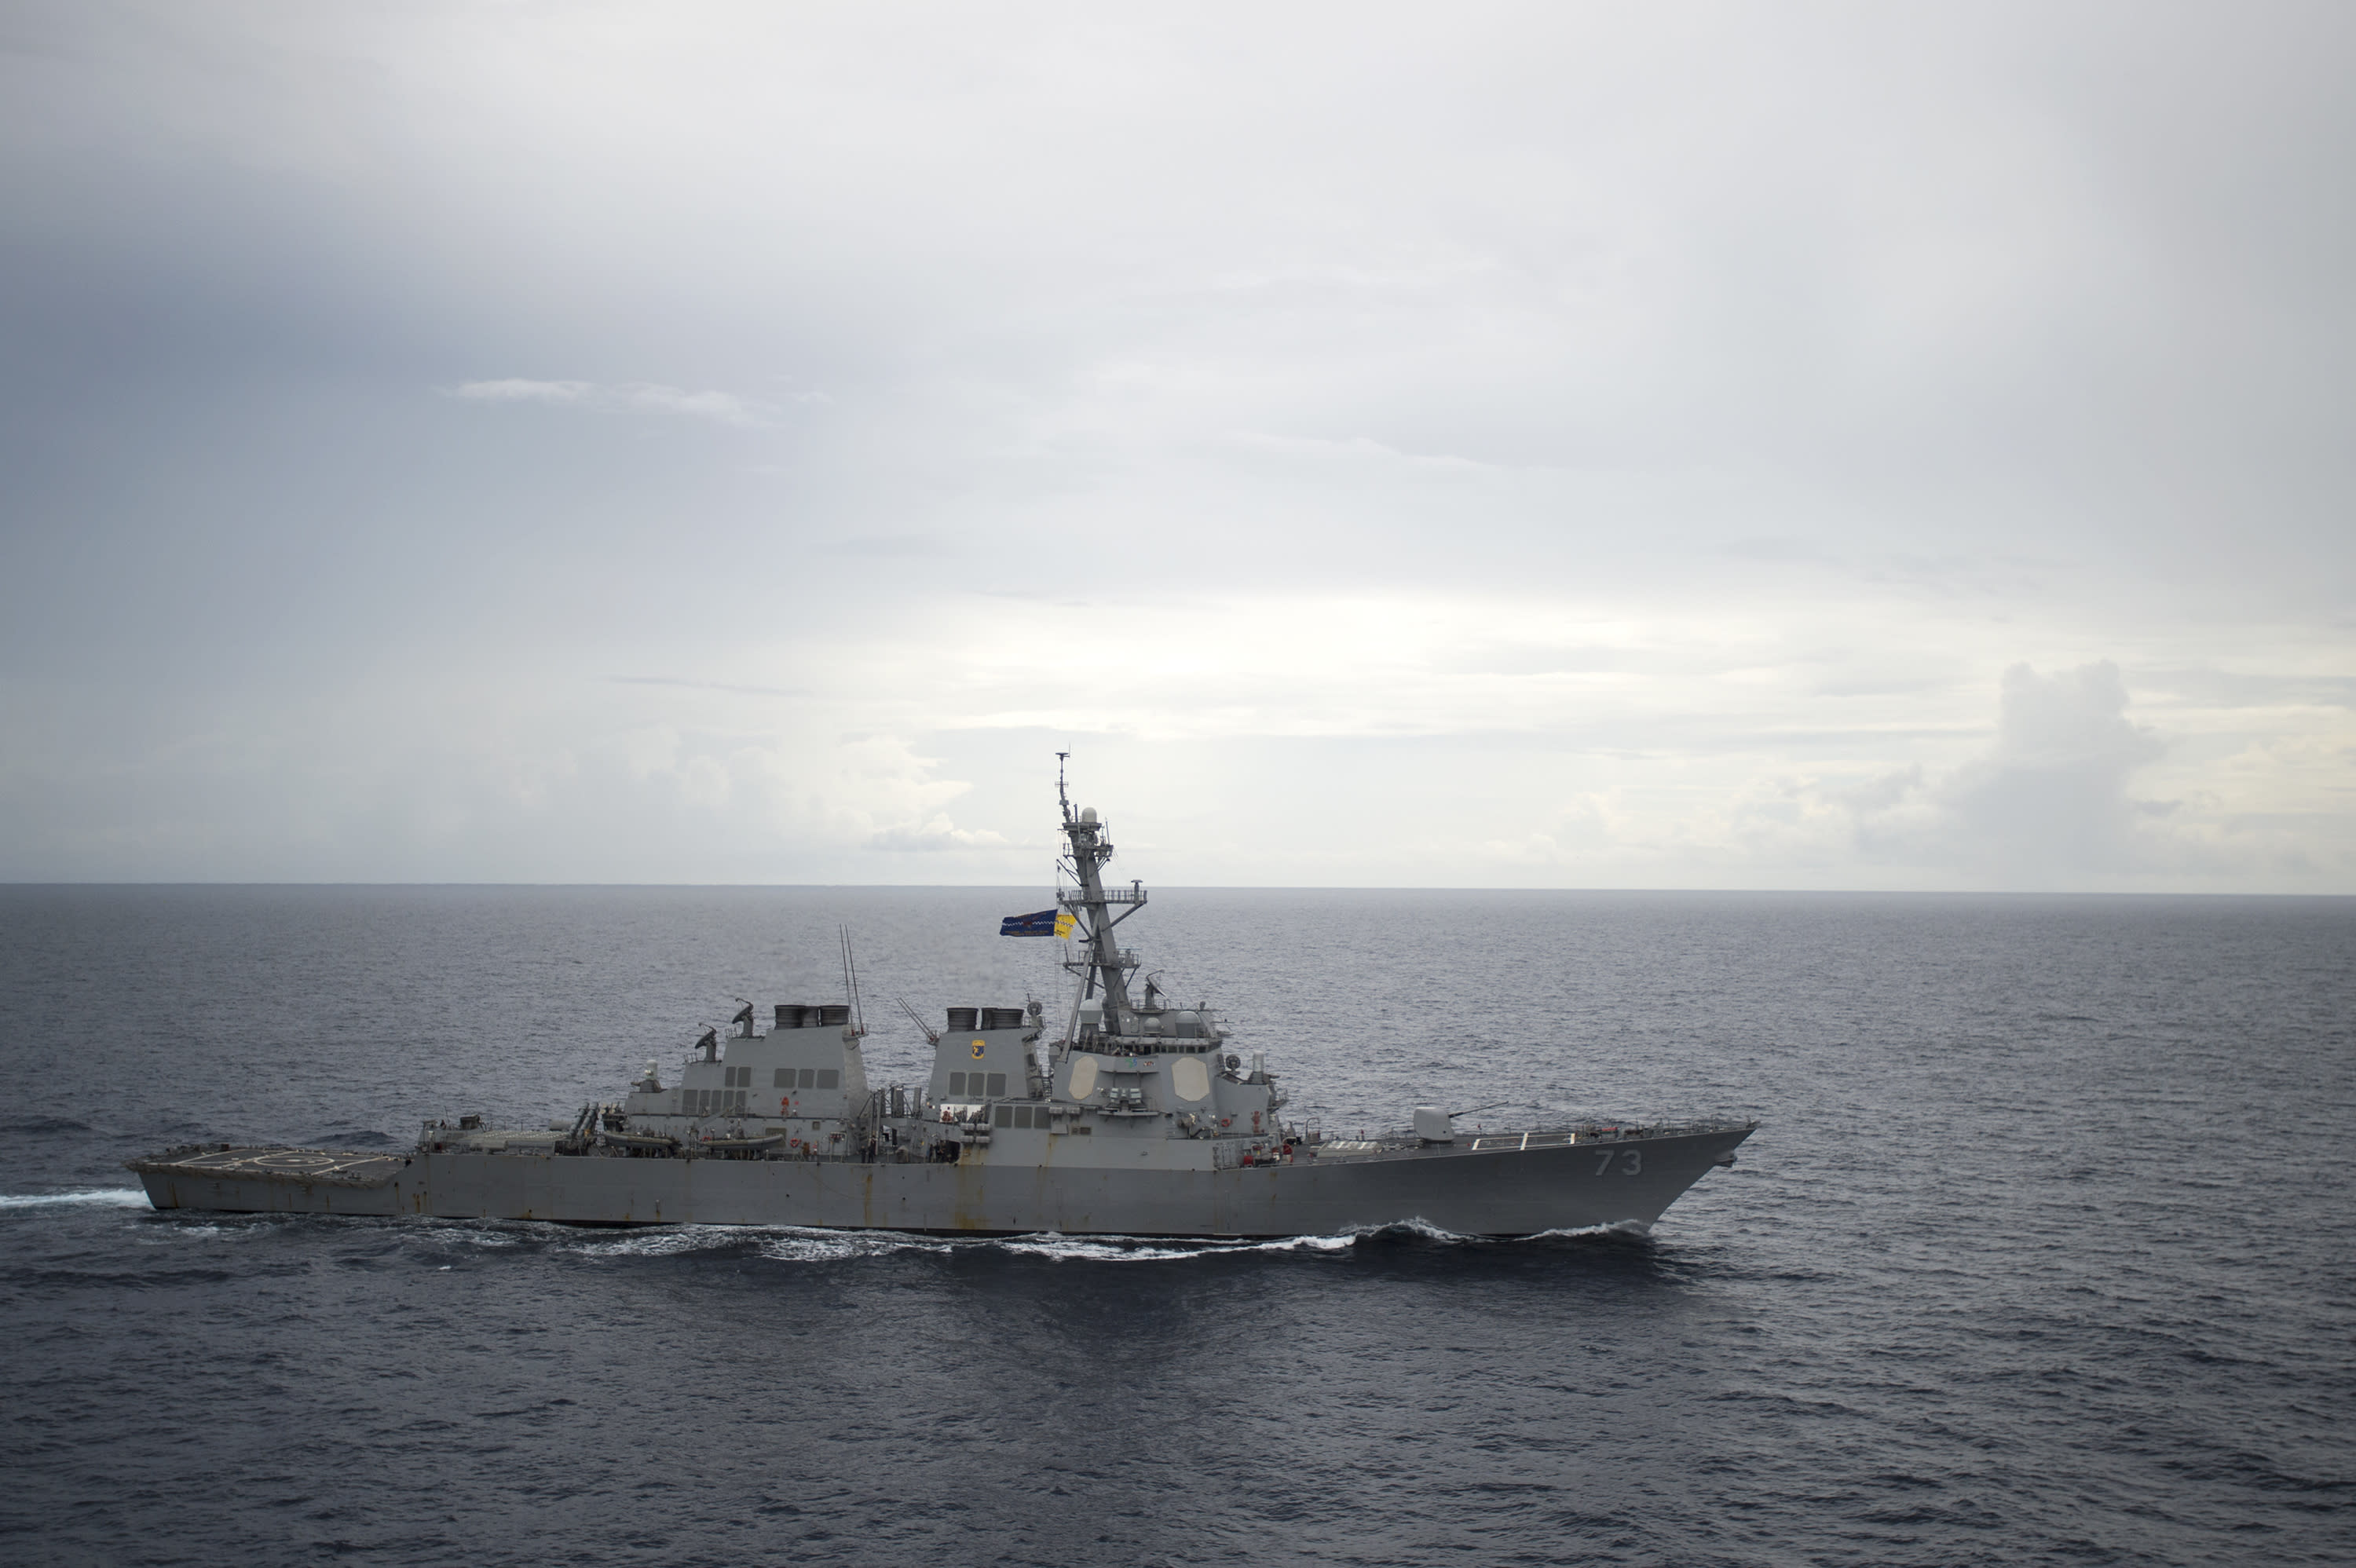 China Responds to US Provocations in South China Sea